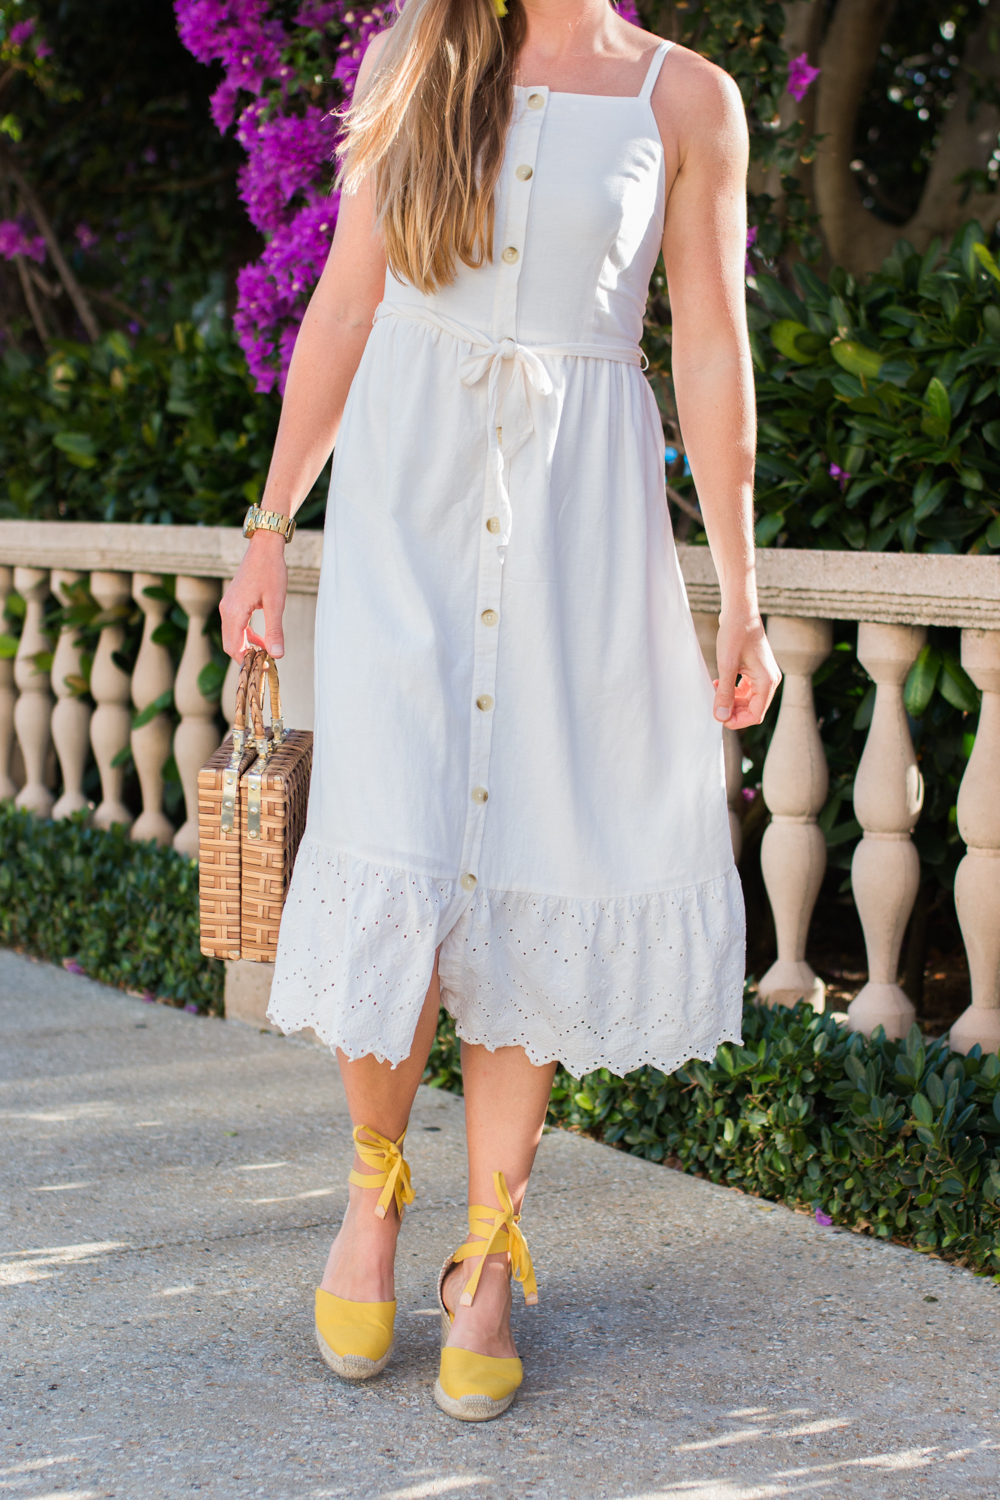 White Button Front Dress for Summer | White Summer Dresses | How to Style a Midi Dress | What to Wear on a Beach Vacation | Old Navy Dress | Castaner Espadrilles | West Palm Beach, Florida - Sunshine Style